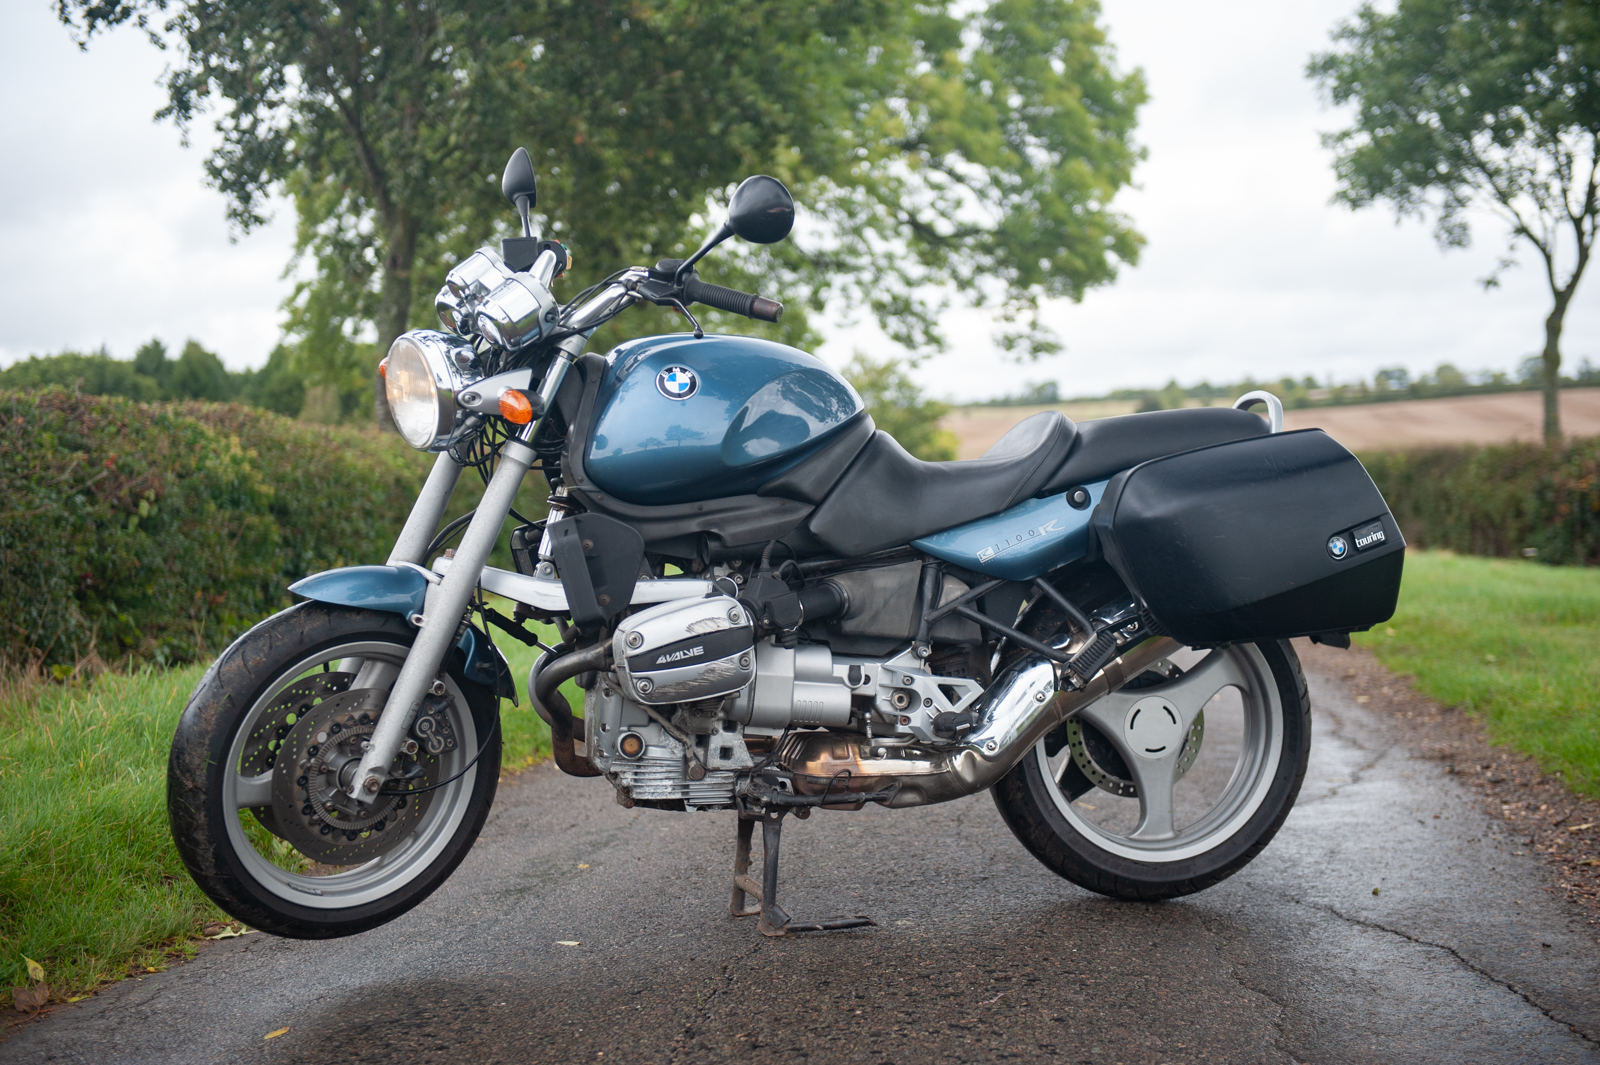 Selling Bikes: BMW R1100R sold on eBay